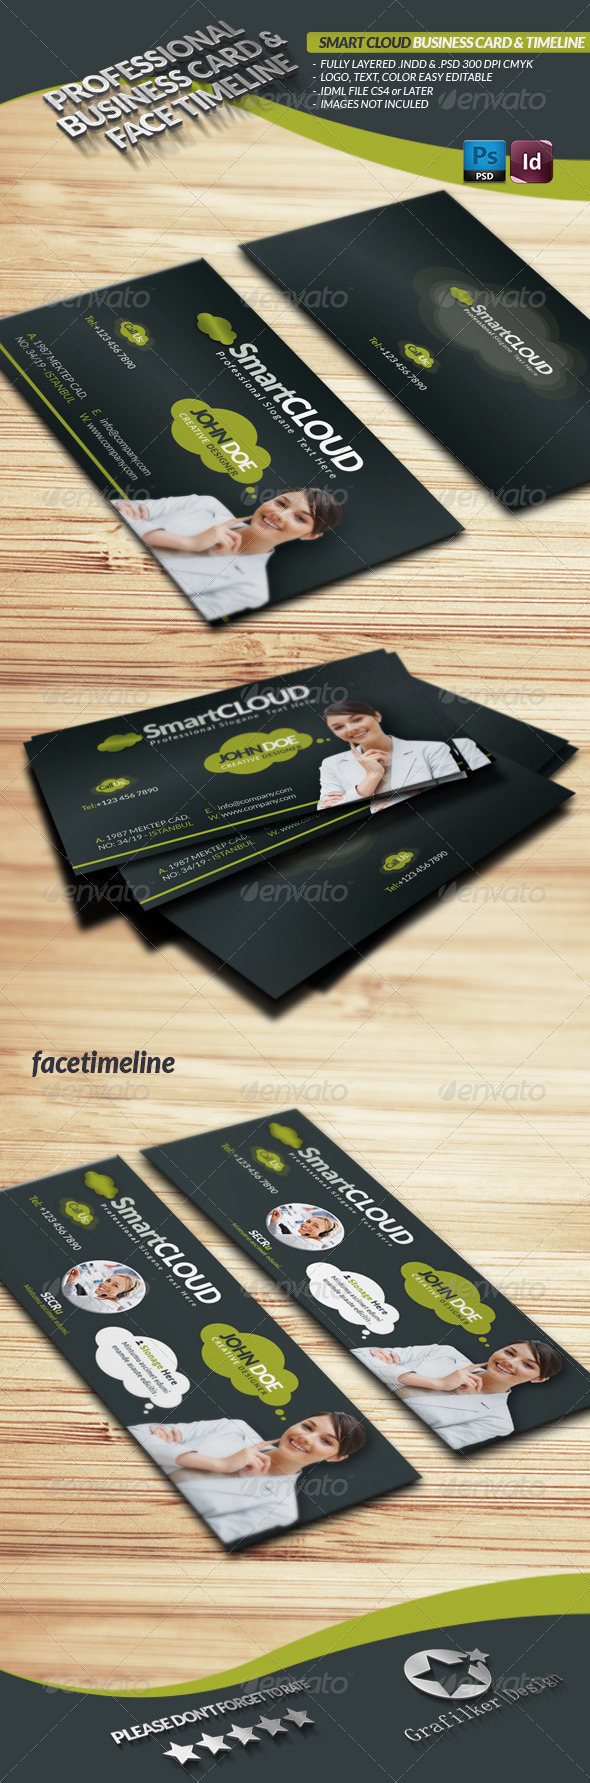 Smart Cloud Business Card Face Timeline